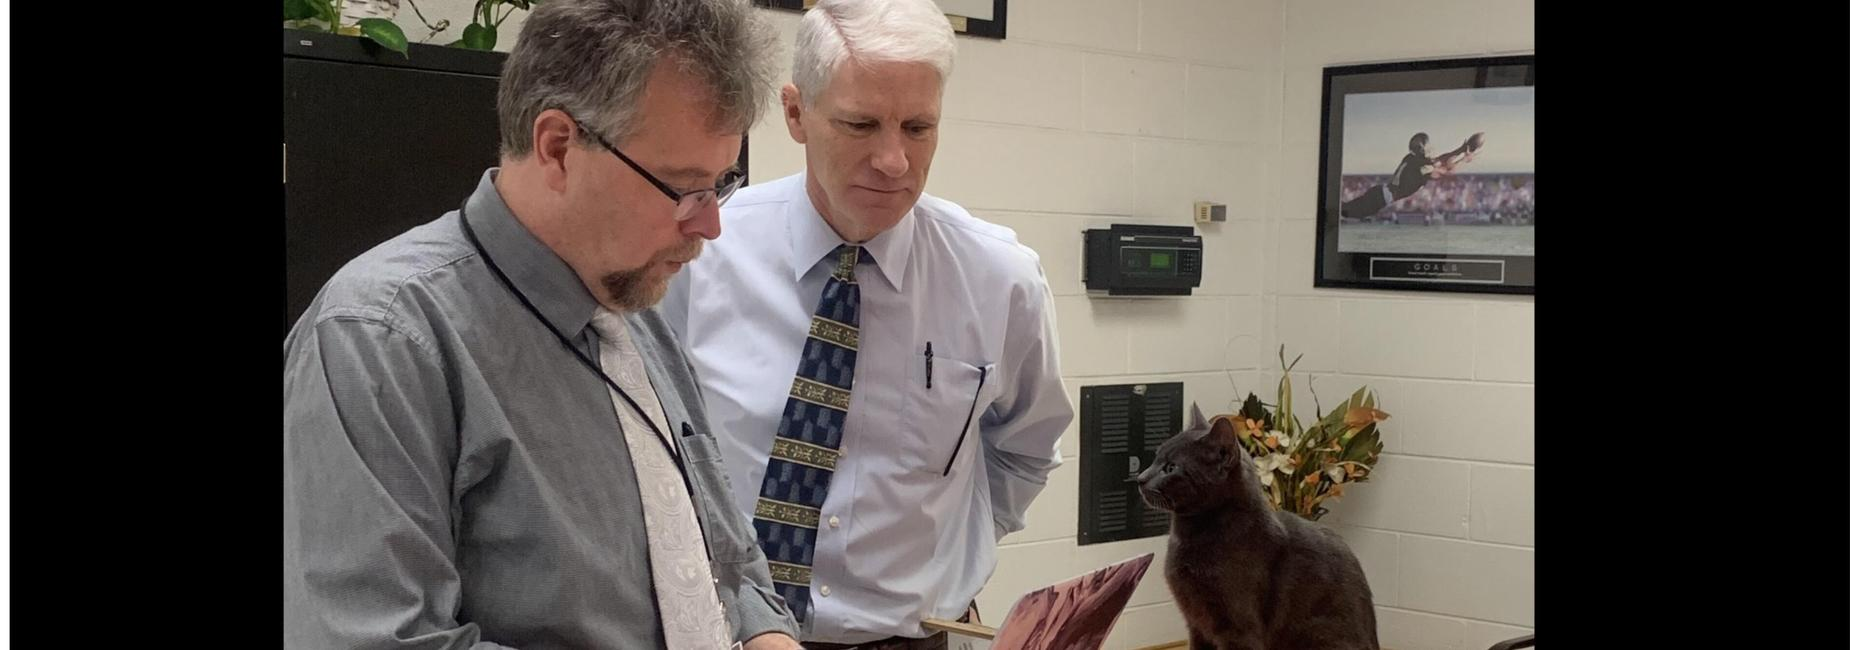 Thomas the office cat helping Mr. Berry and Mr. Blevins